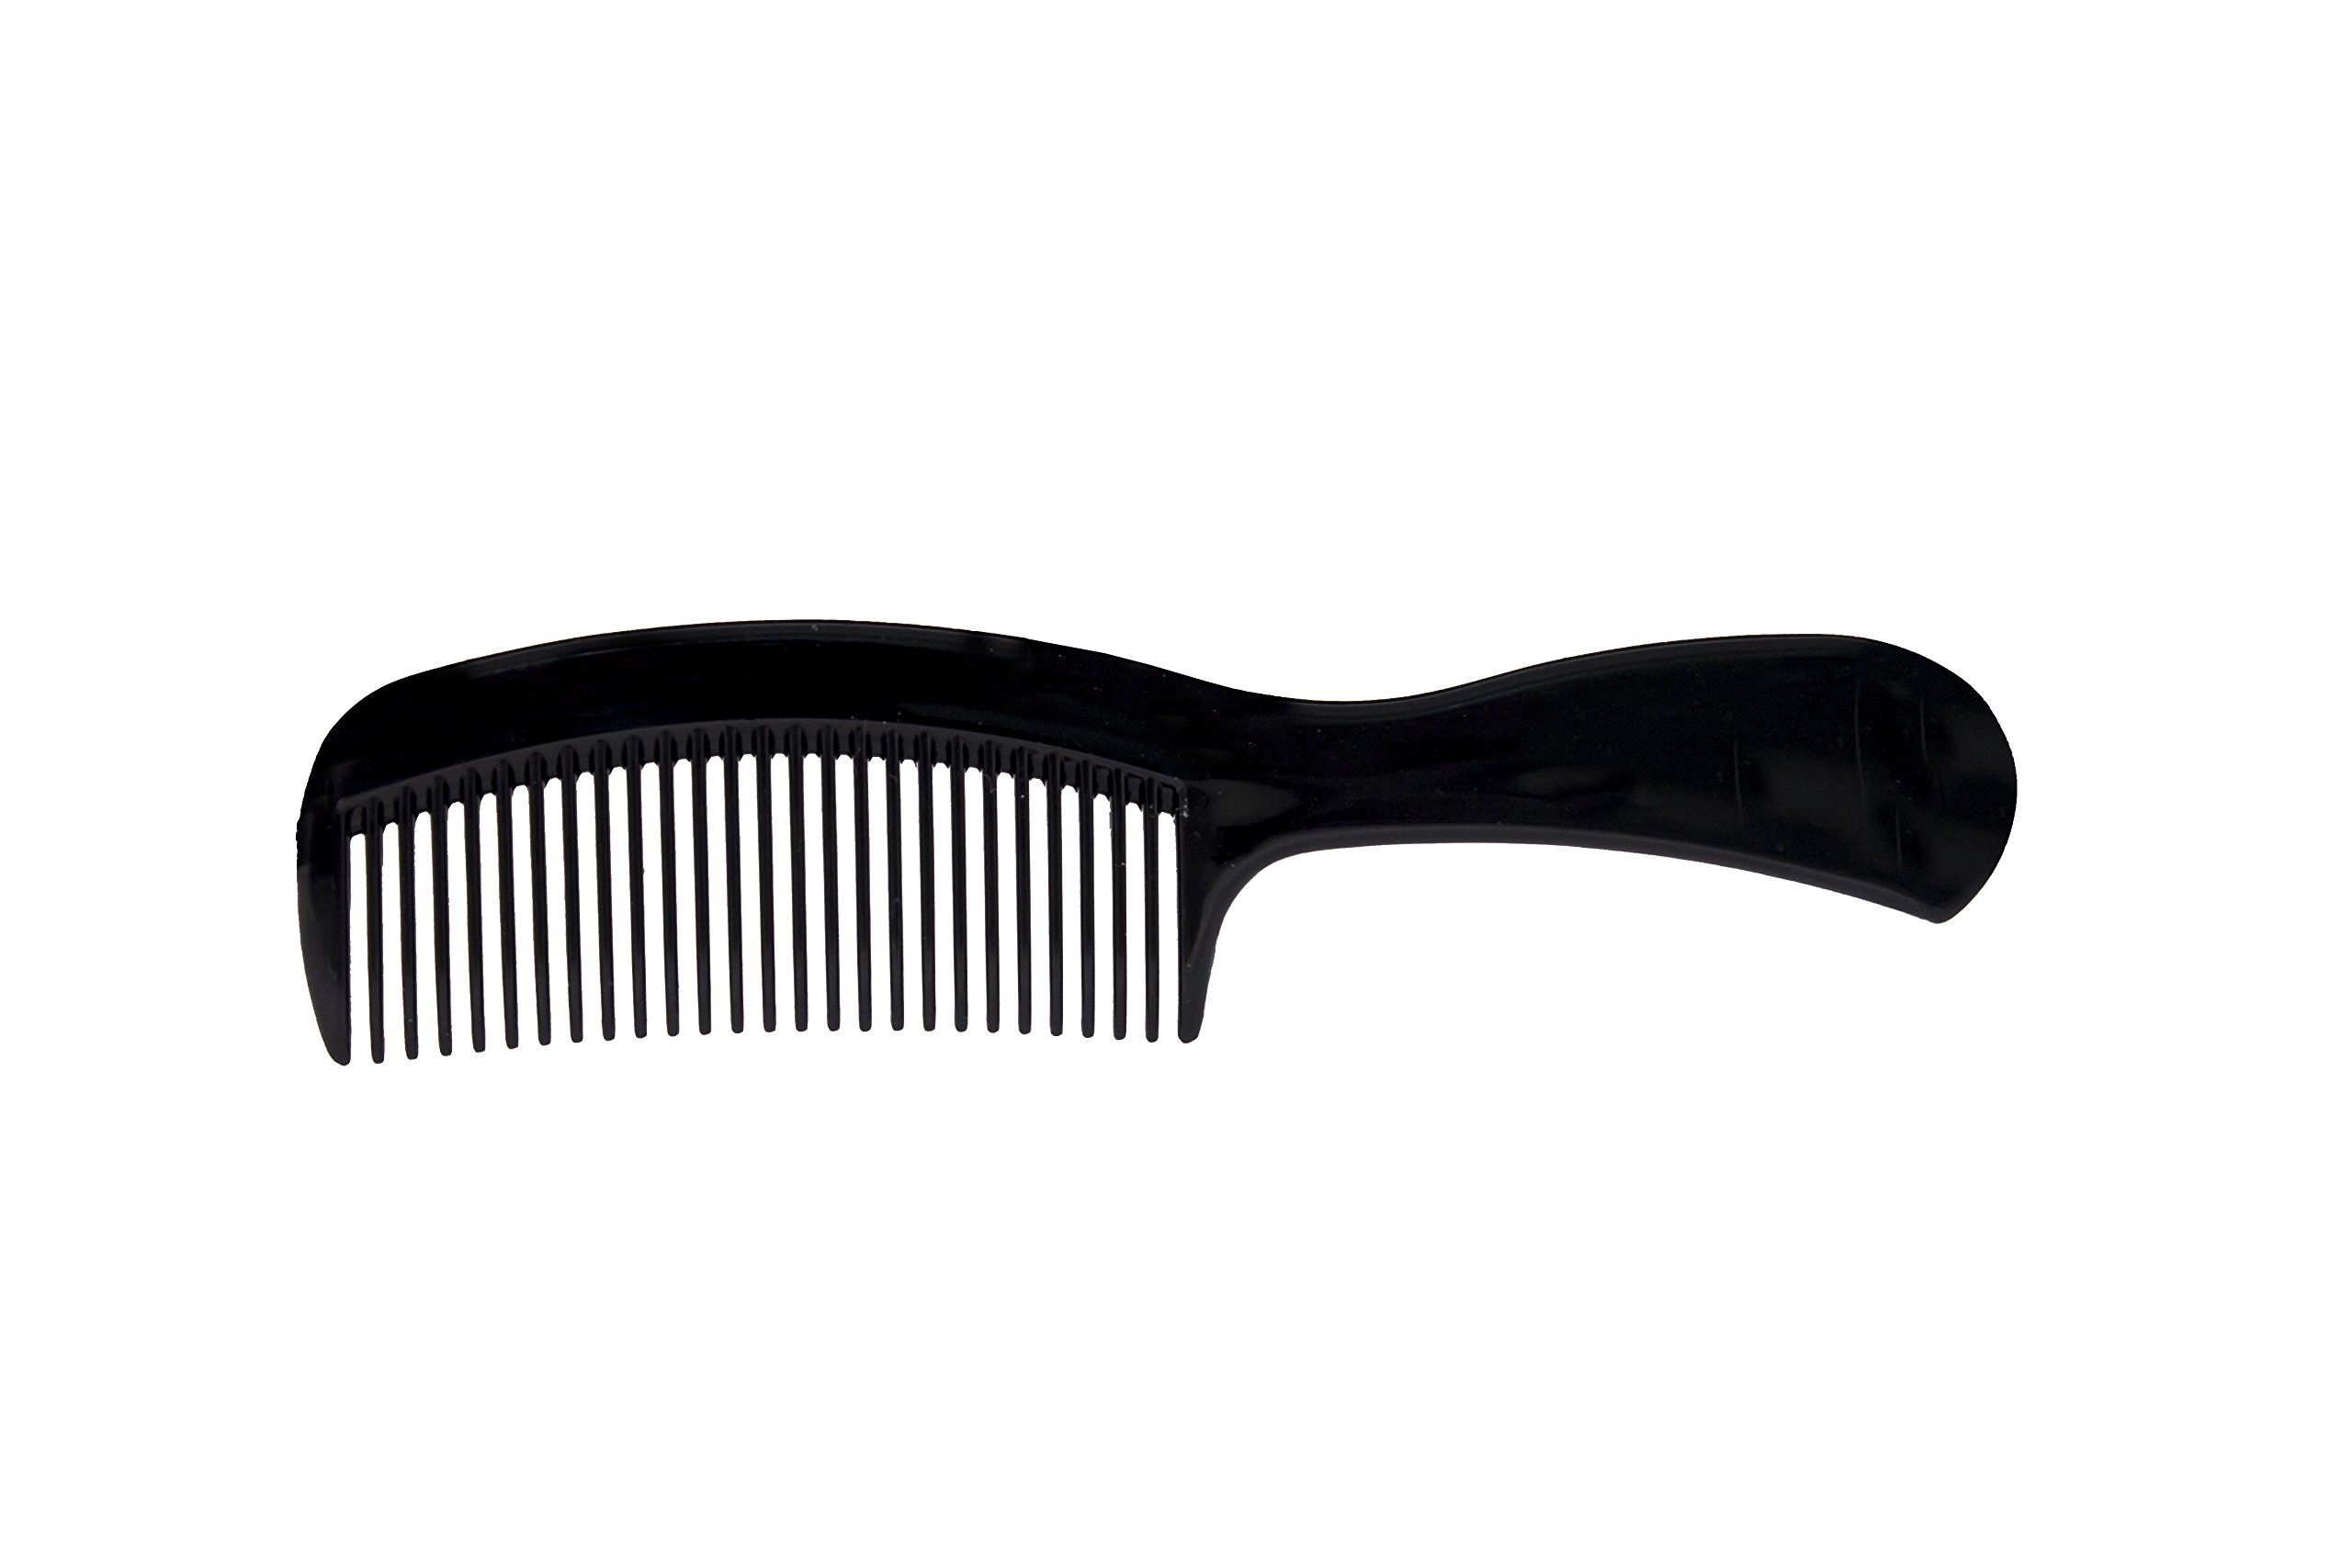 Dukal 2655 Dawn Mist Adult Comb, Long Handle, 6.5'' Long, Black (Pack of 720)